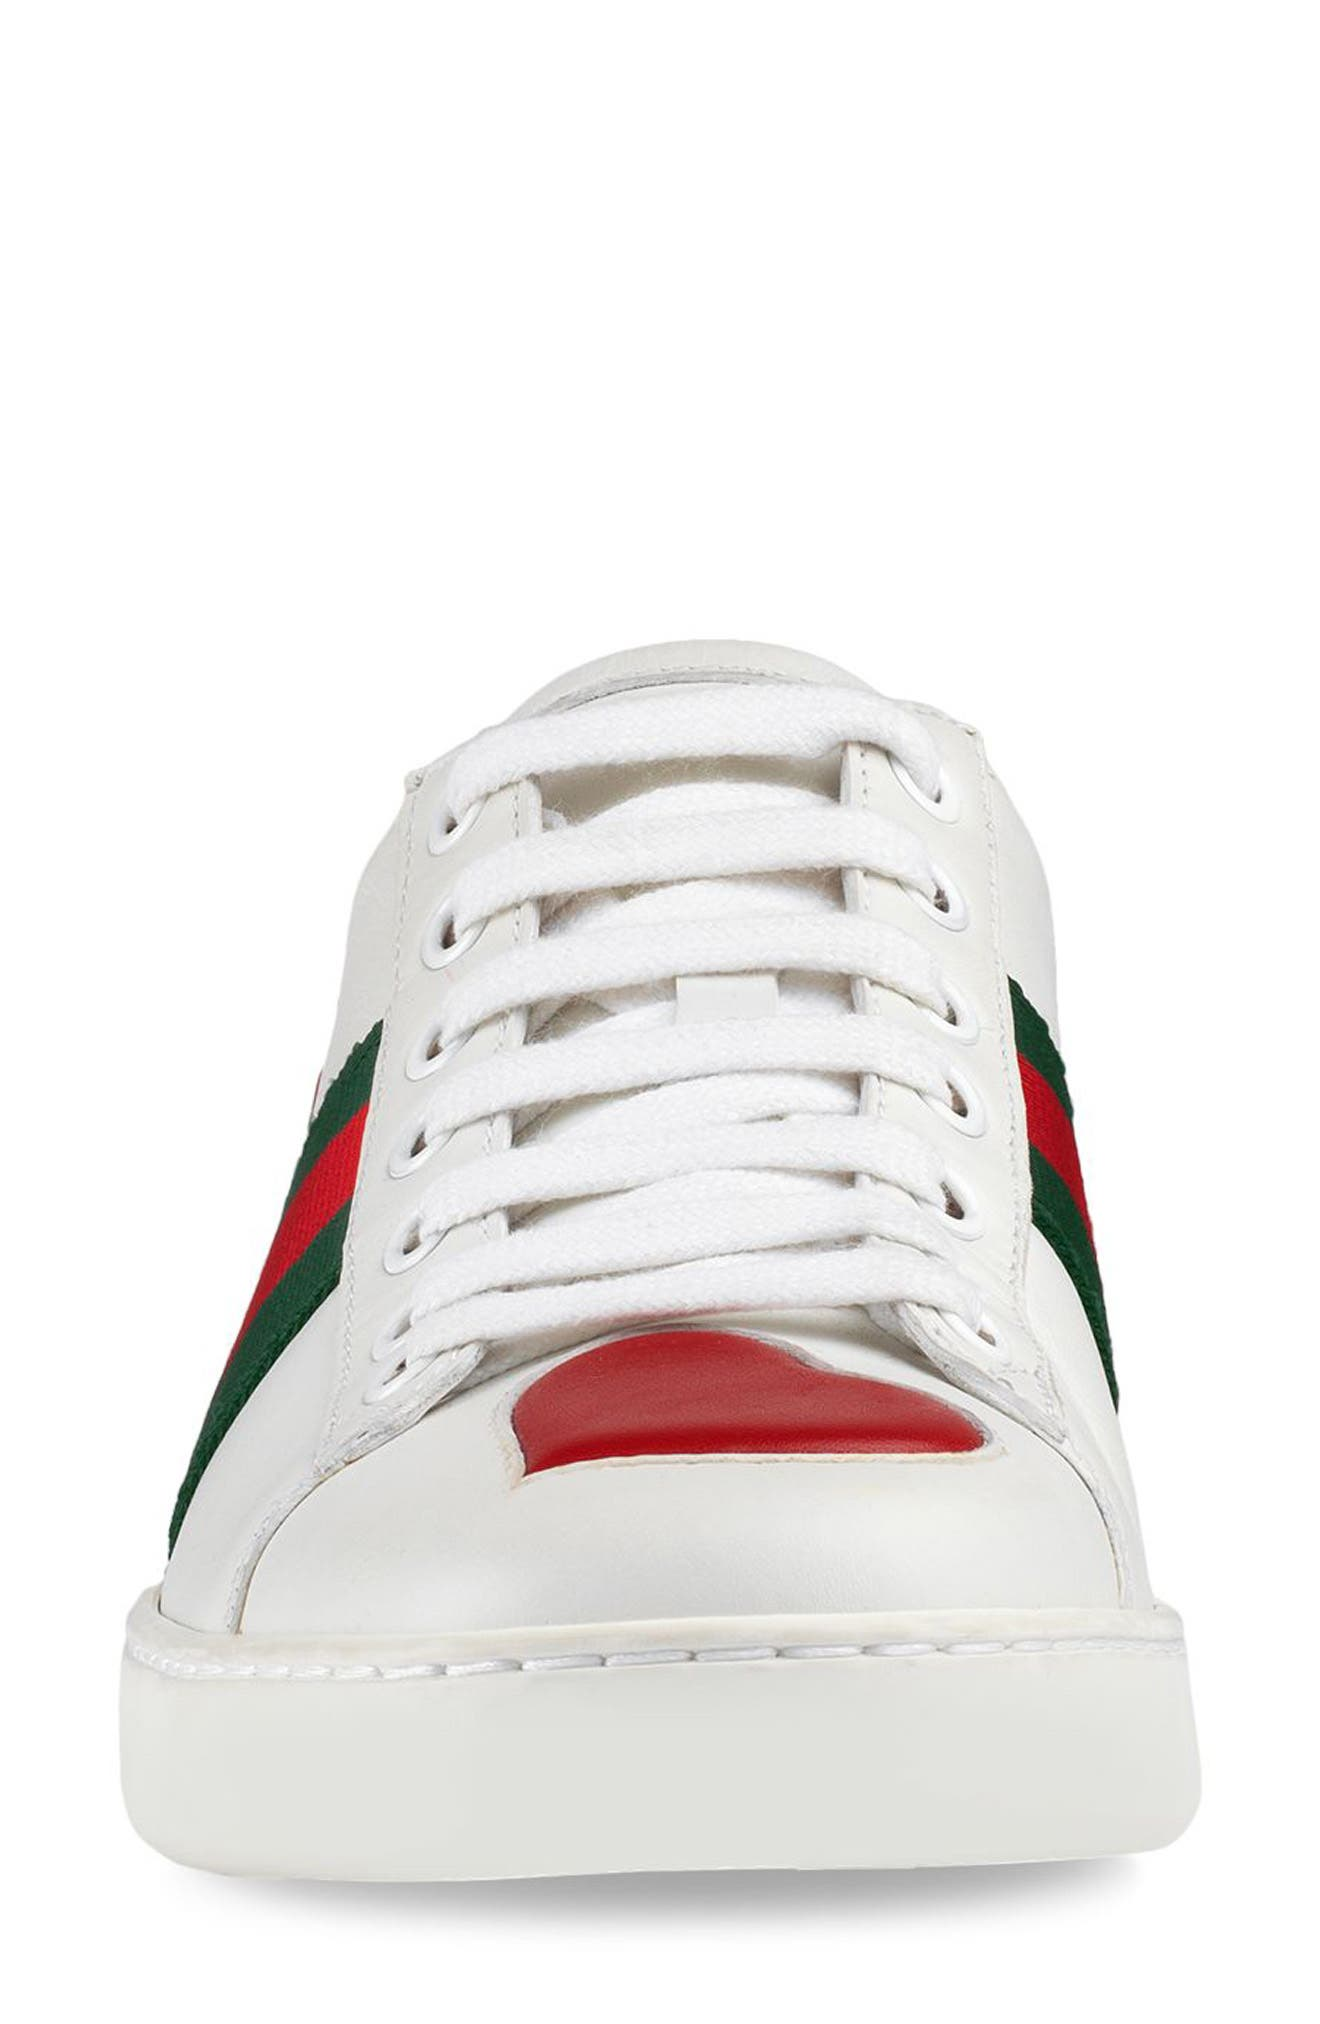 GUCCI,                             New Ace Heart Sneaker,                             Alternate thumbnail 3, color,                             138